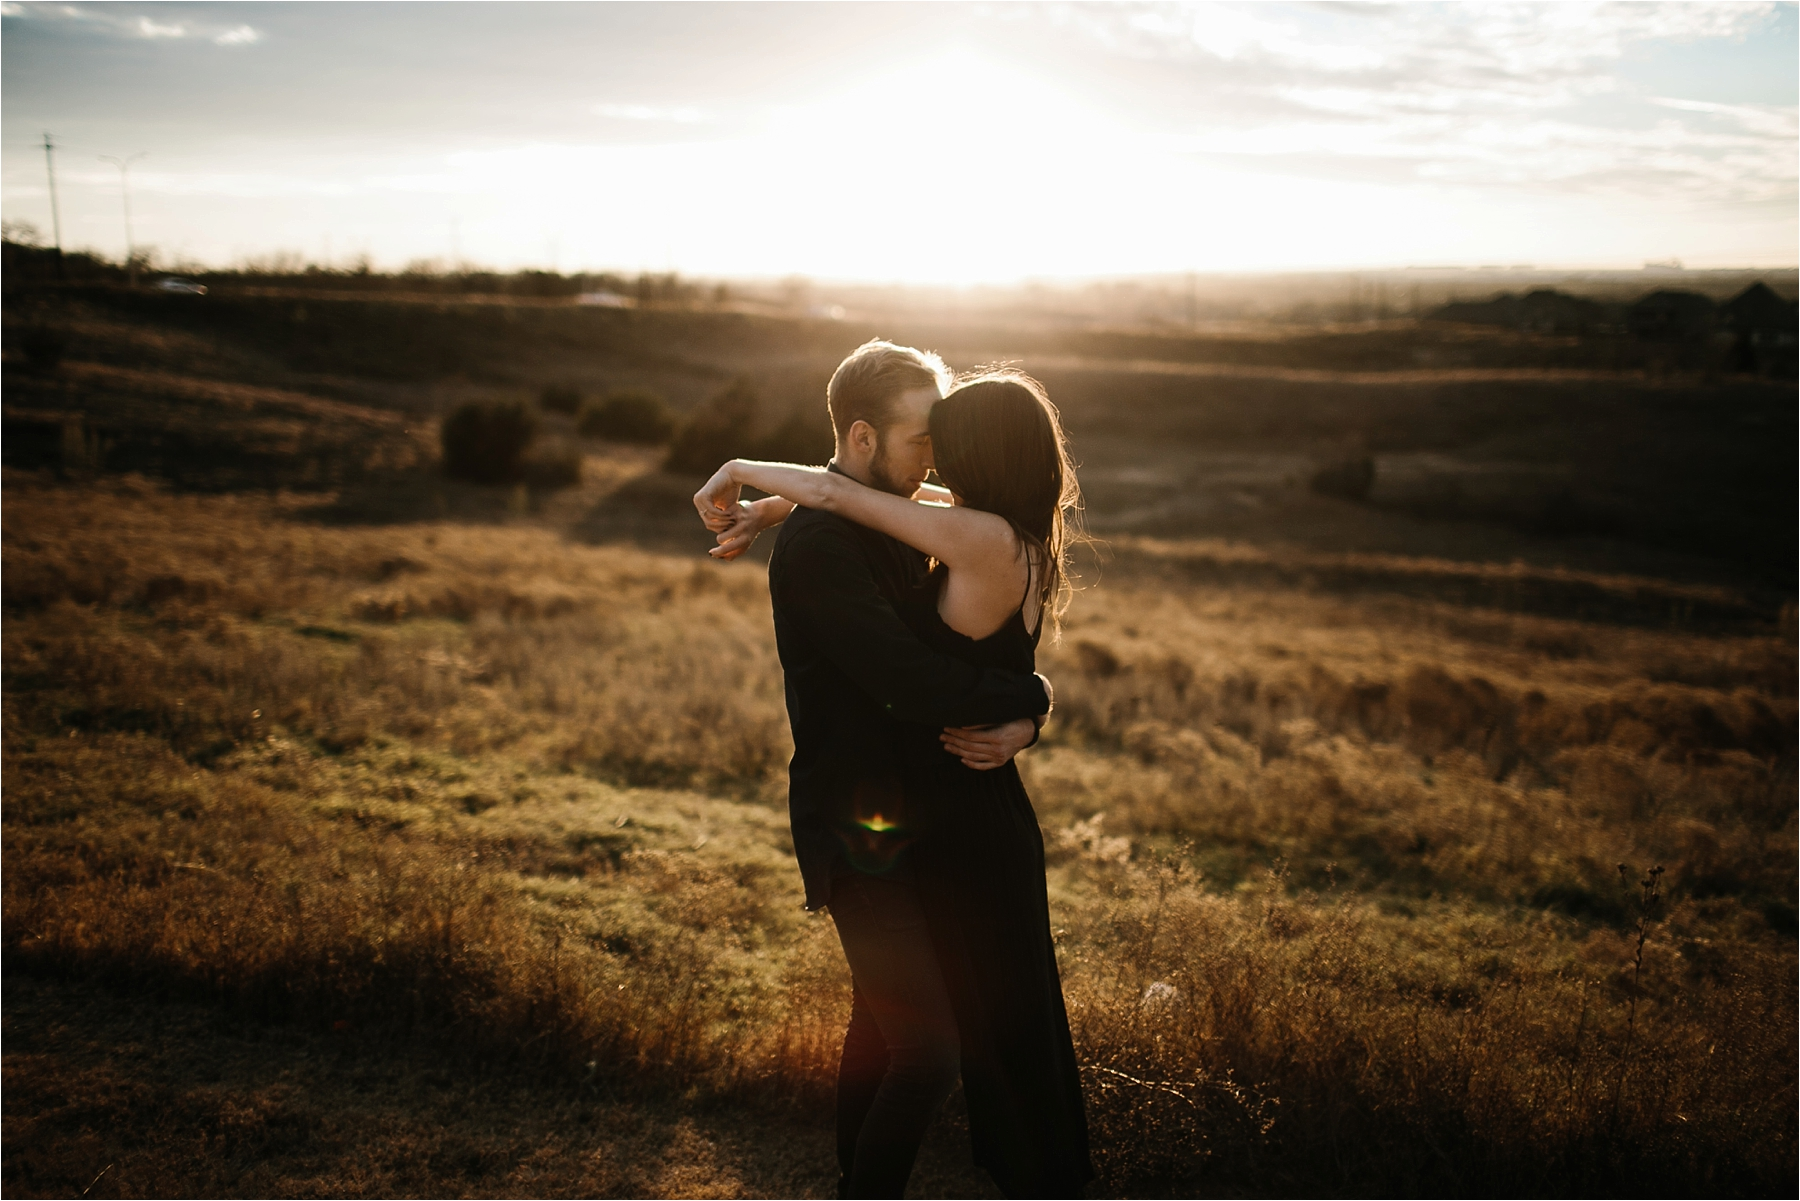 Trey + Phoebe __ a playful, intimate engagement session with dark_neutral outfit inspiration by North Texas Wedding Photographer Rachel Meagan Photography __ 27